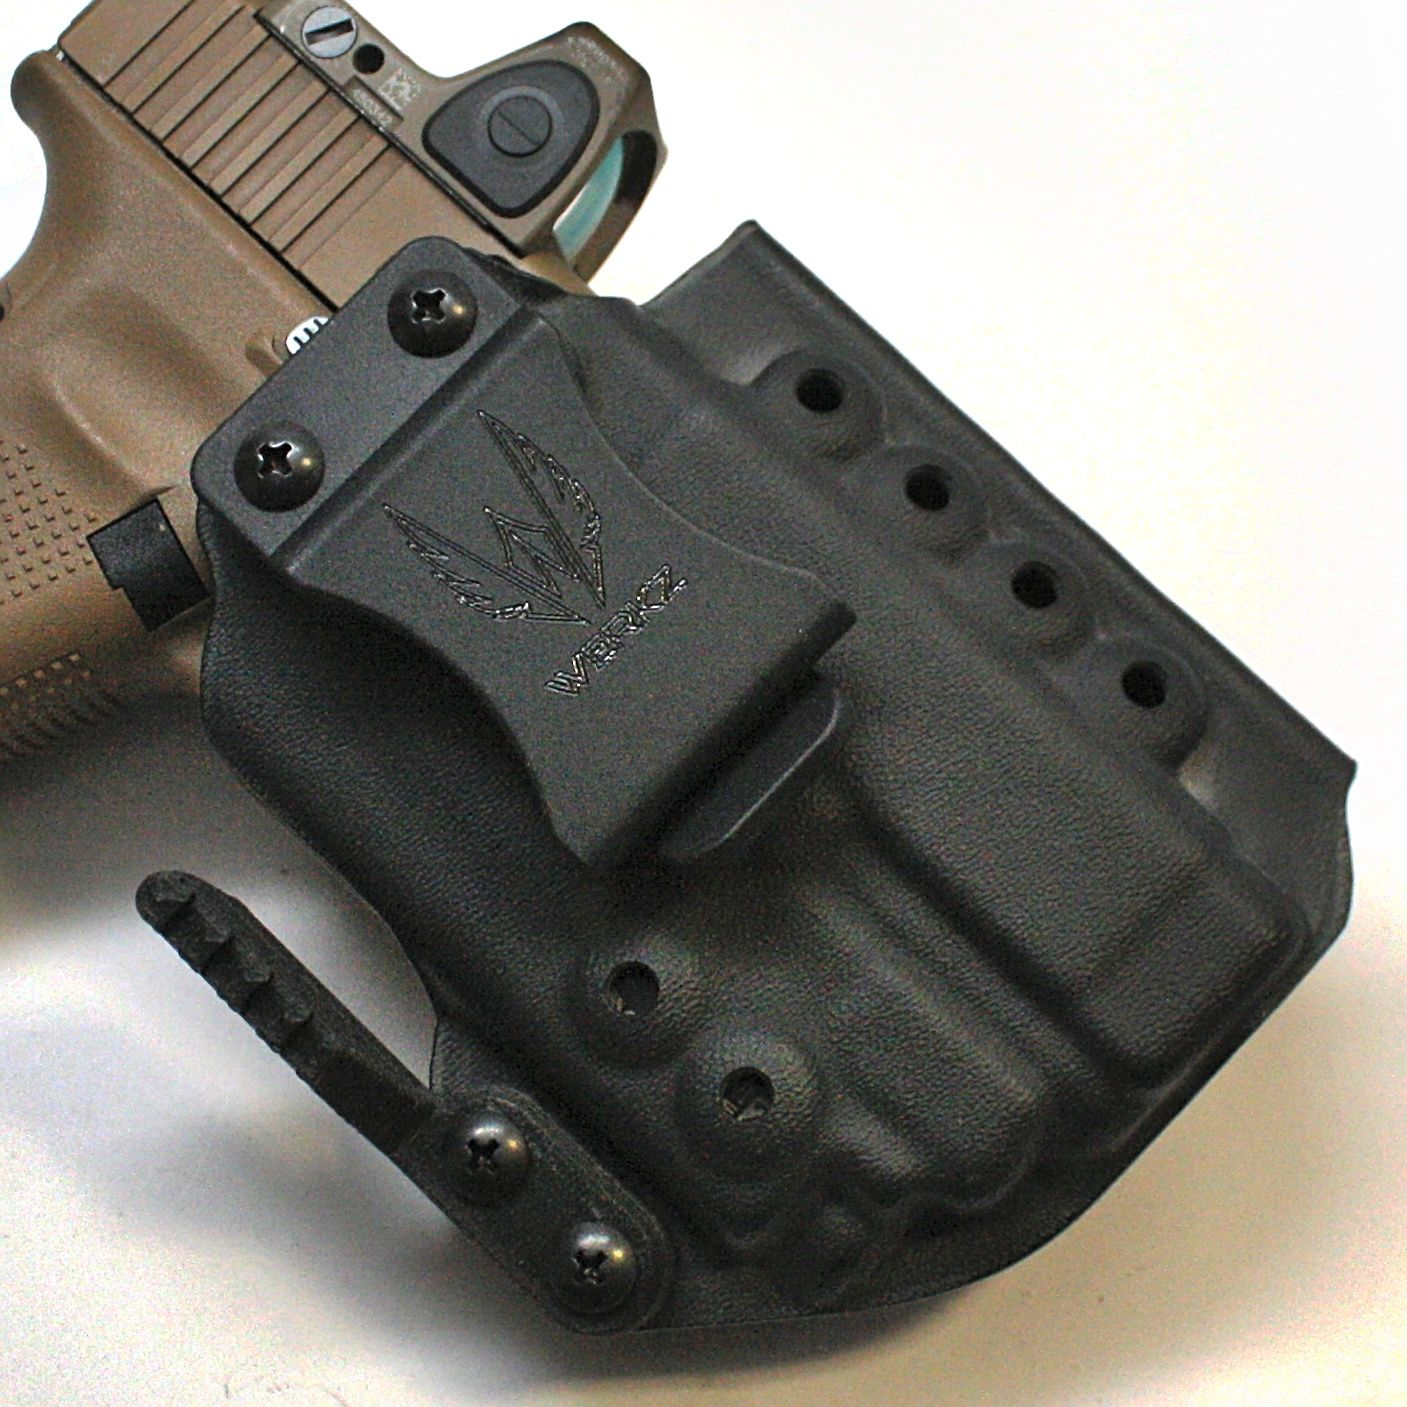 Werkz M6 for the Olight PL-Mini 2 Valkyrie #holster #PL